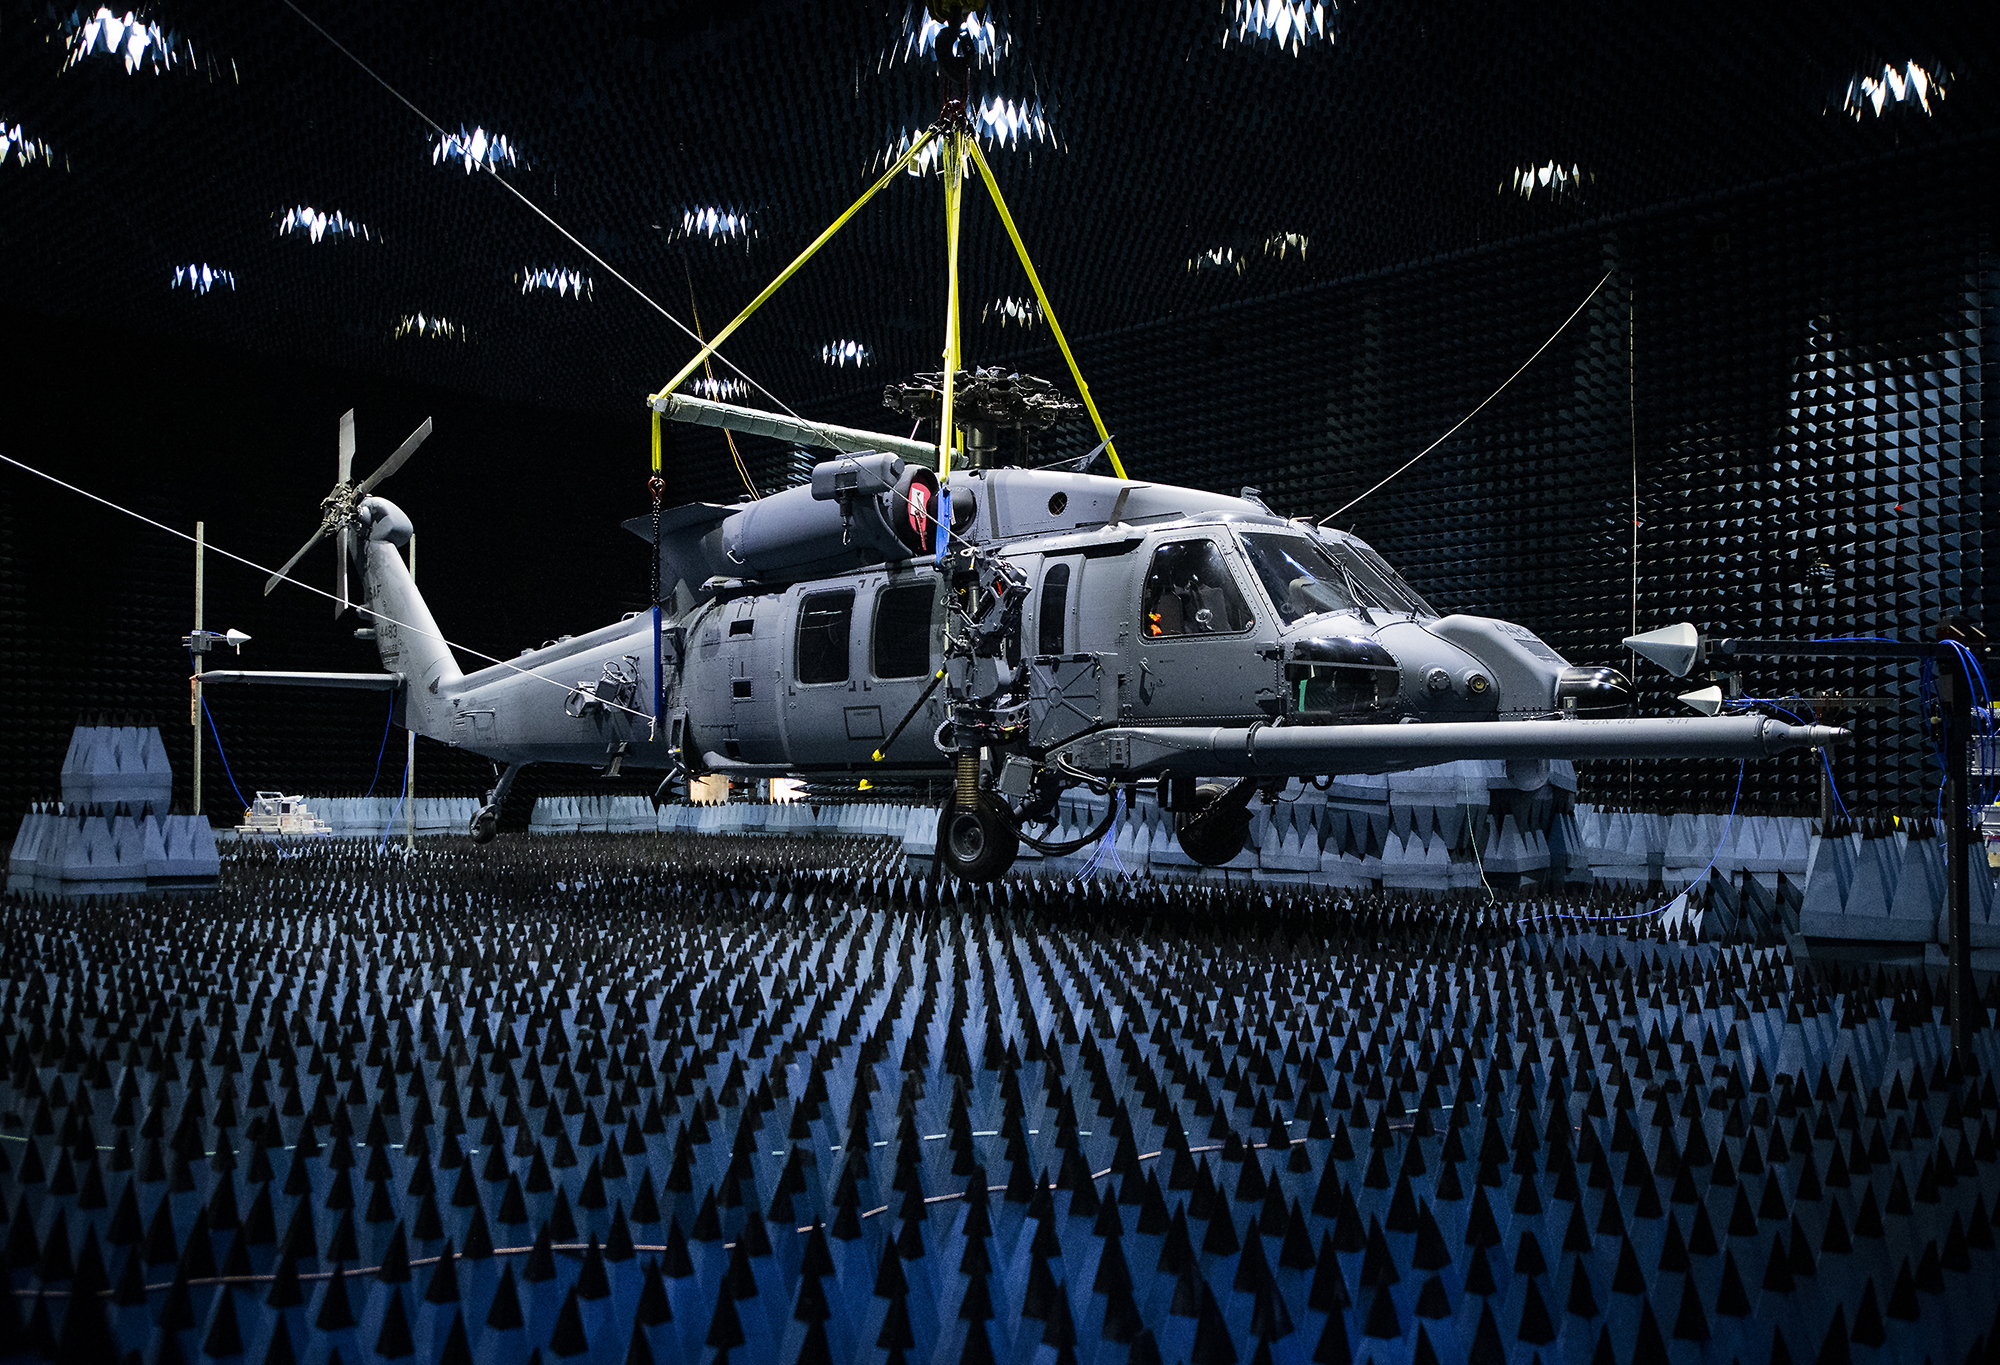 A 413th Flight Test Squadron HH-60W hangs in the anechoic chamber at the Joint Preflight Integration of Munitions and Electronic Systems hangar Jan. 6, 2020, at Eglin Air Force Base, Fla. (Samuel King Jr./Air Force)